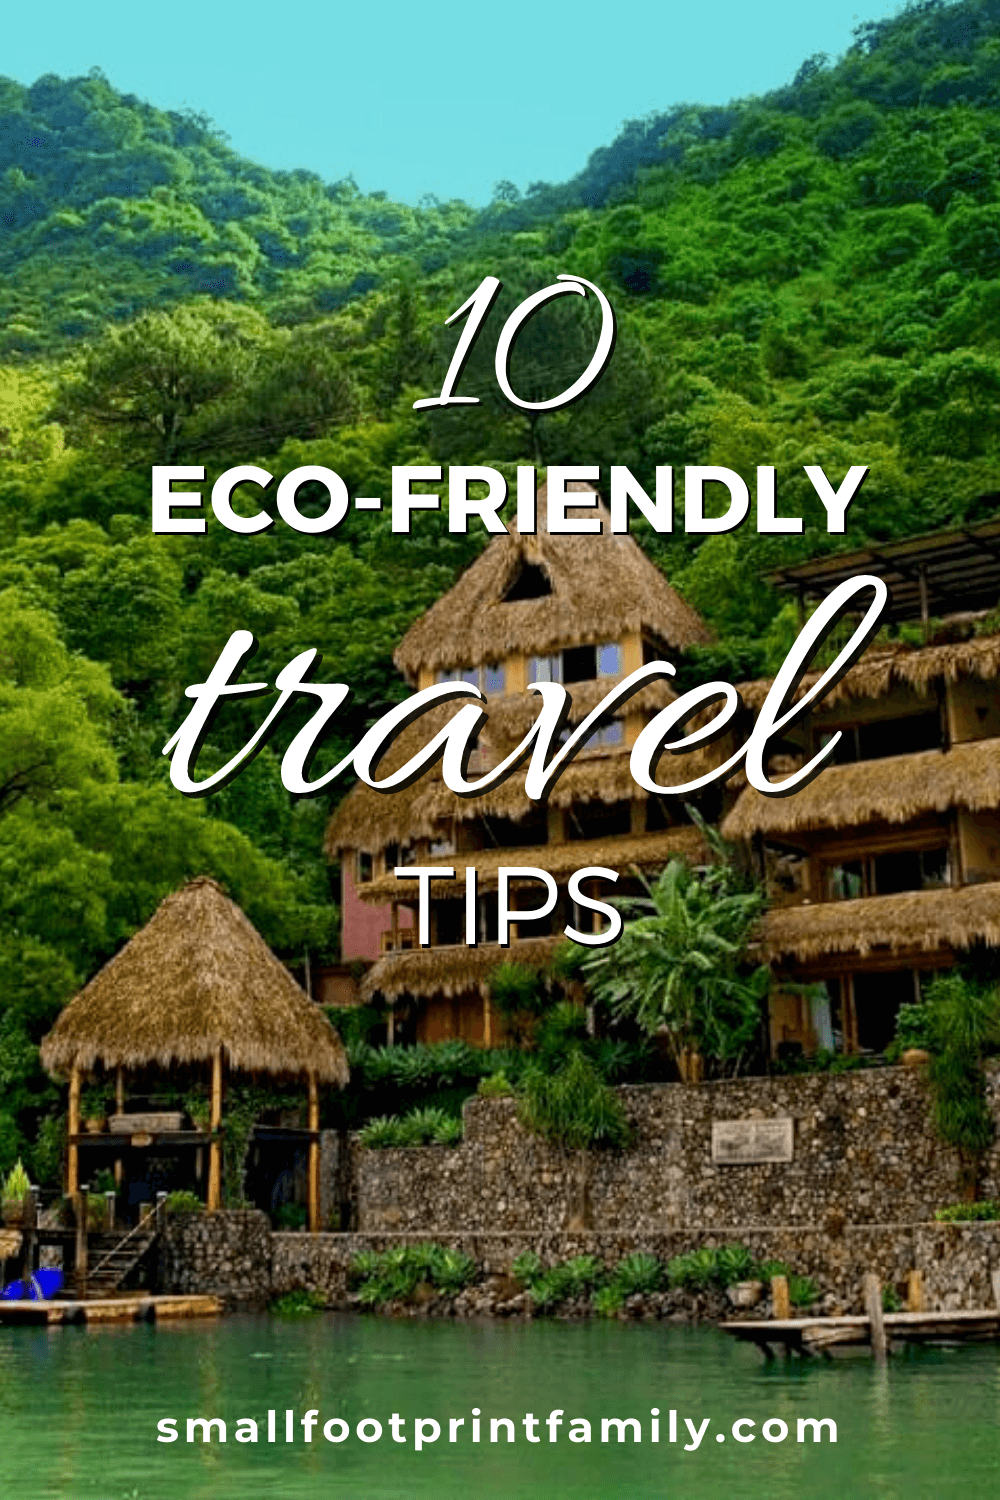 Here are some travel tips on how to have a great vacation with a smaller, more planet-friendly footprint...